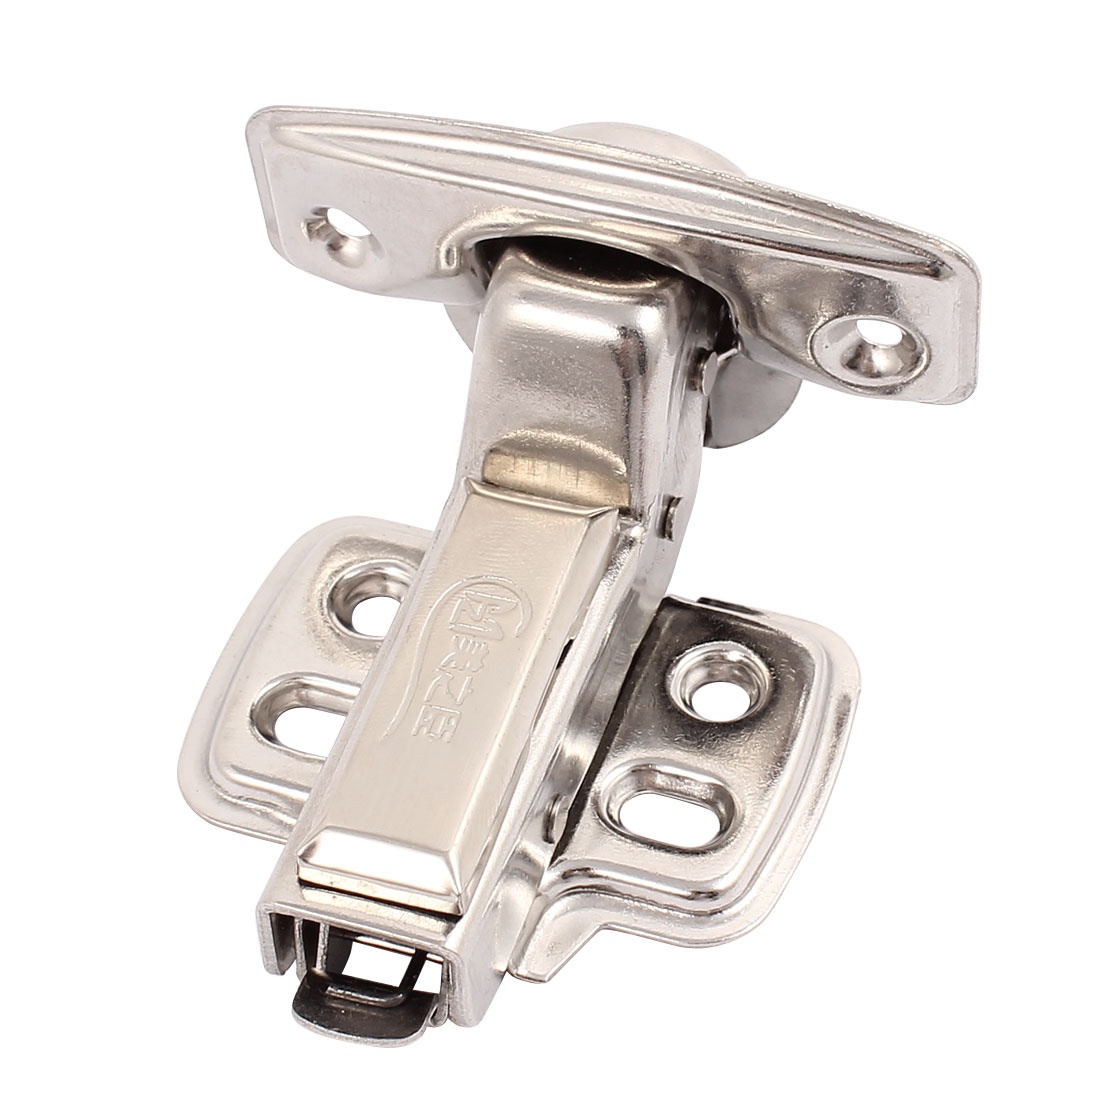 Cabinet Furniture Stainless Steel Concealed Cabinet Hinge 1.5mm Thick Silver Tone